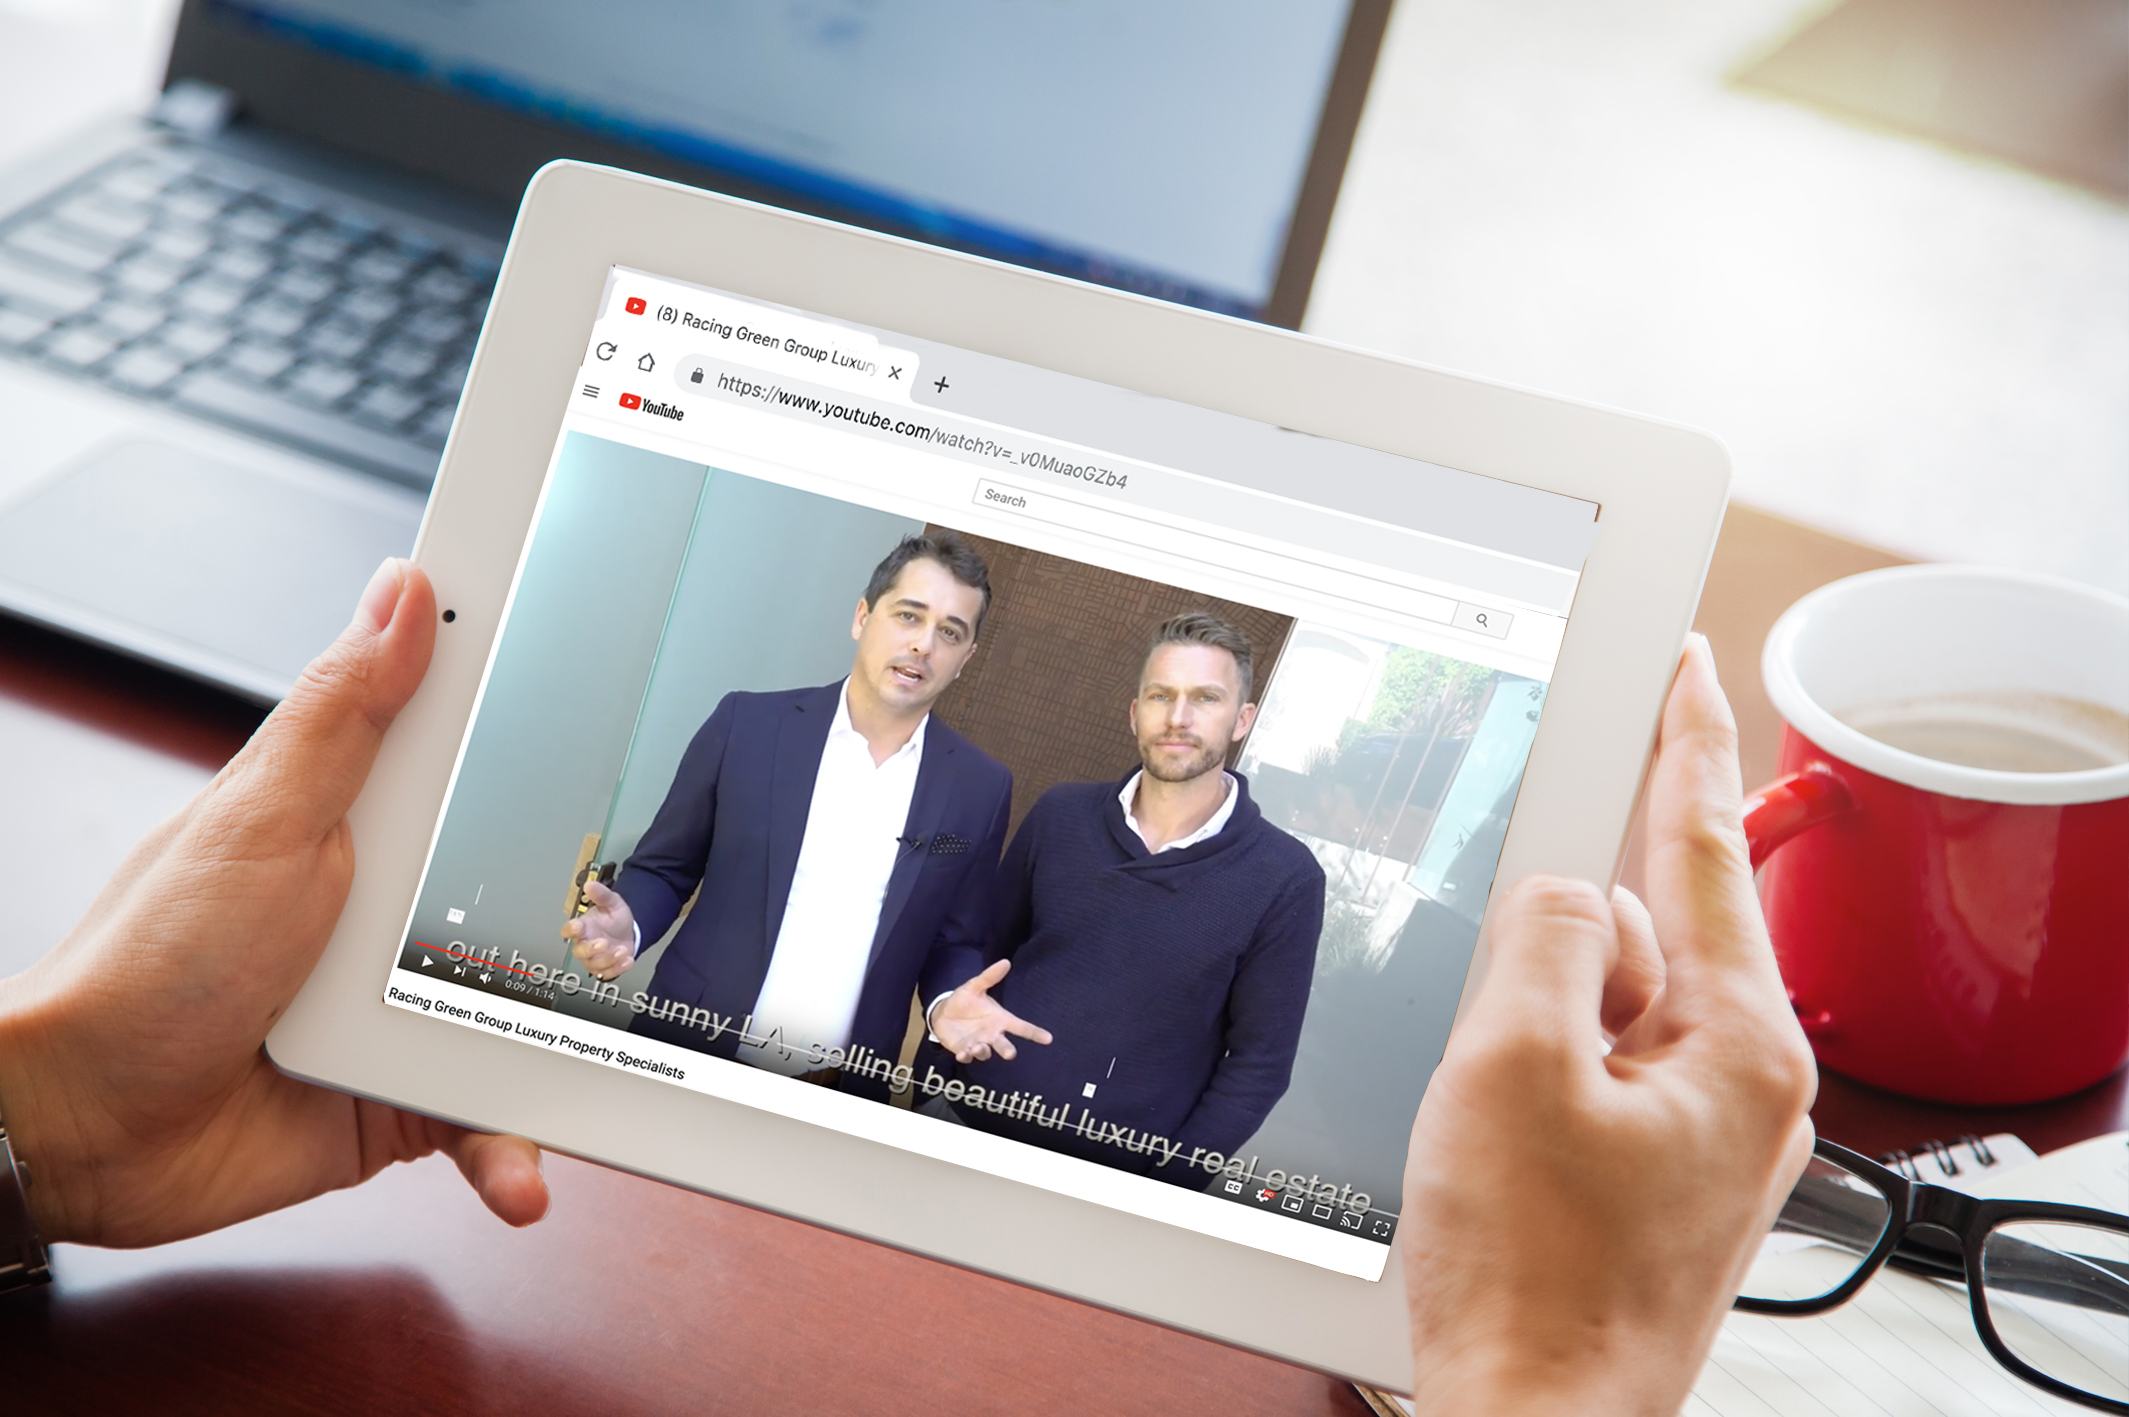 YOUTUBE CHANNEL - Our YouTube channel 'THAT PROPERTY SHOW' advertises our active listings with a video of your home, As well as producing weekly HGTV style content which brings in subscribers from all over the world.